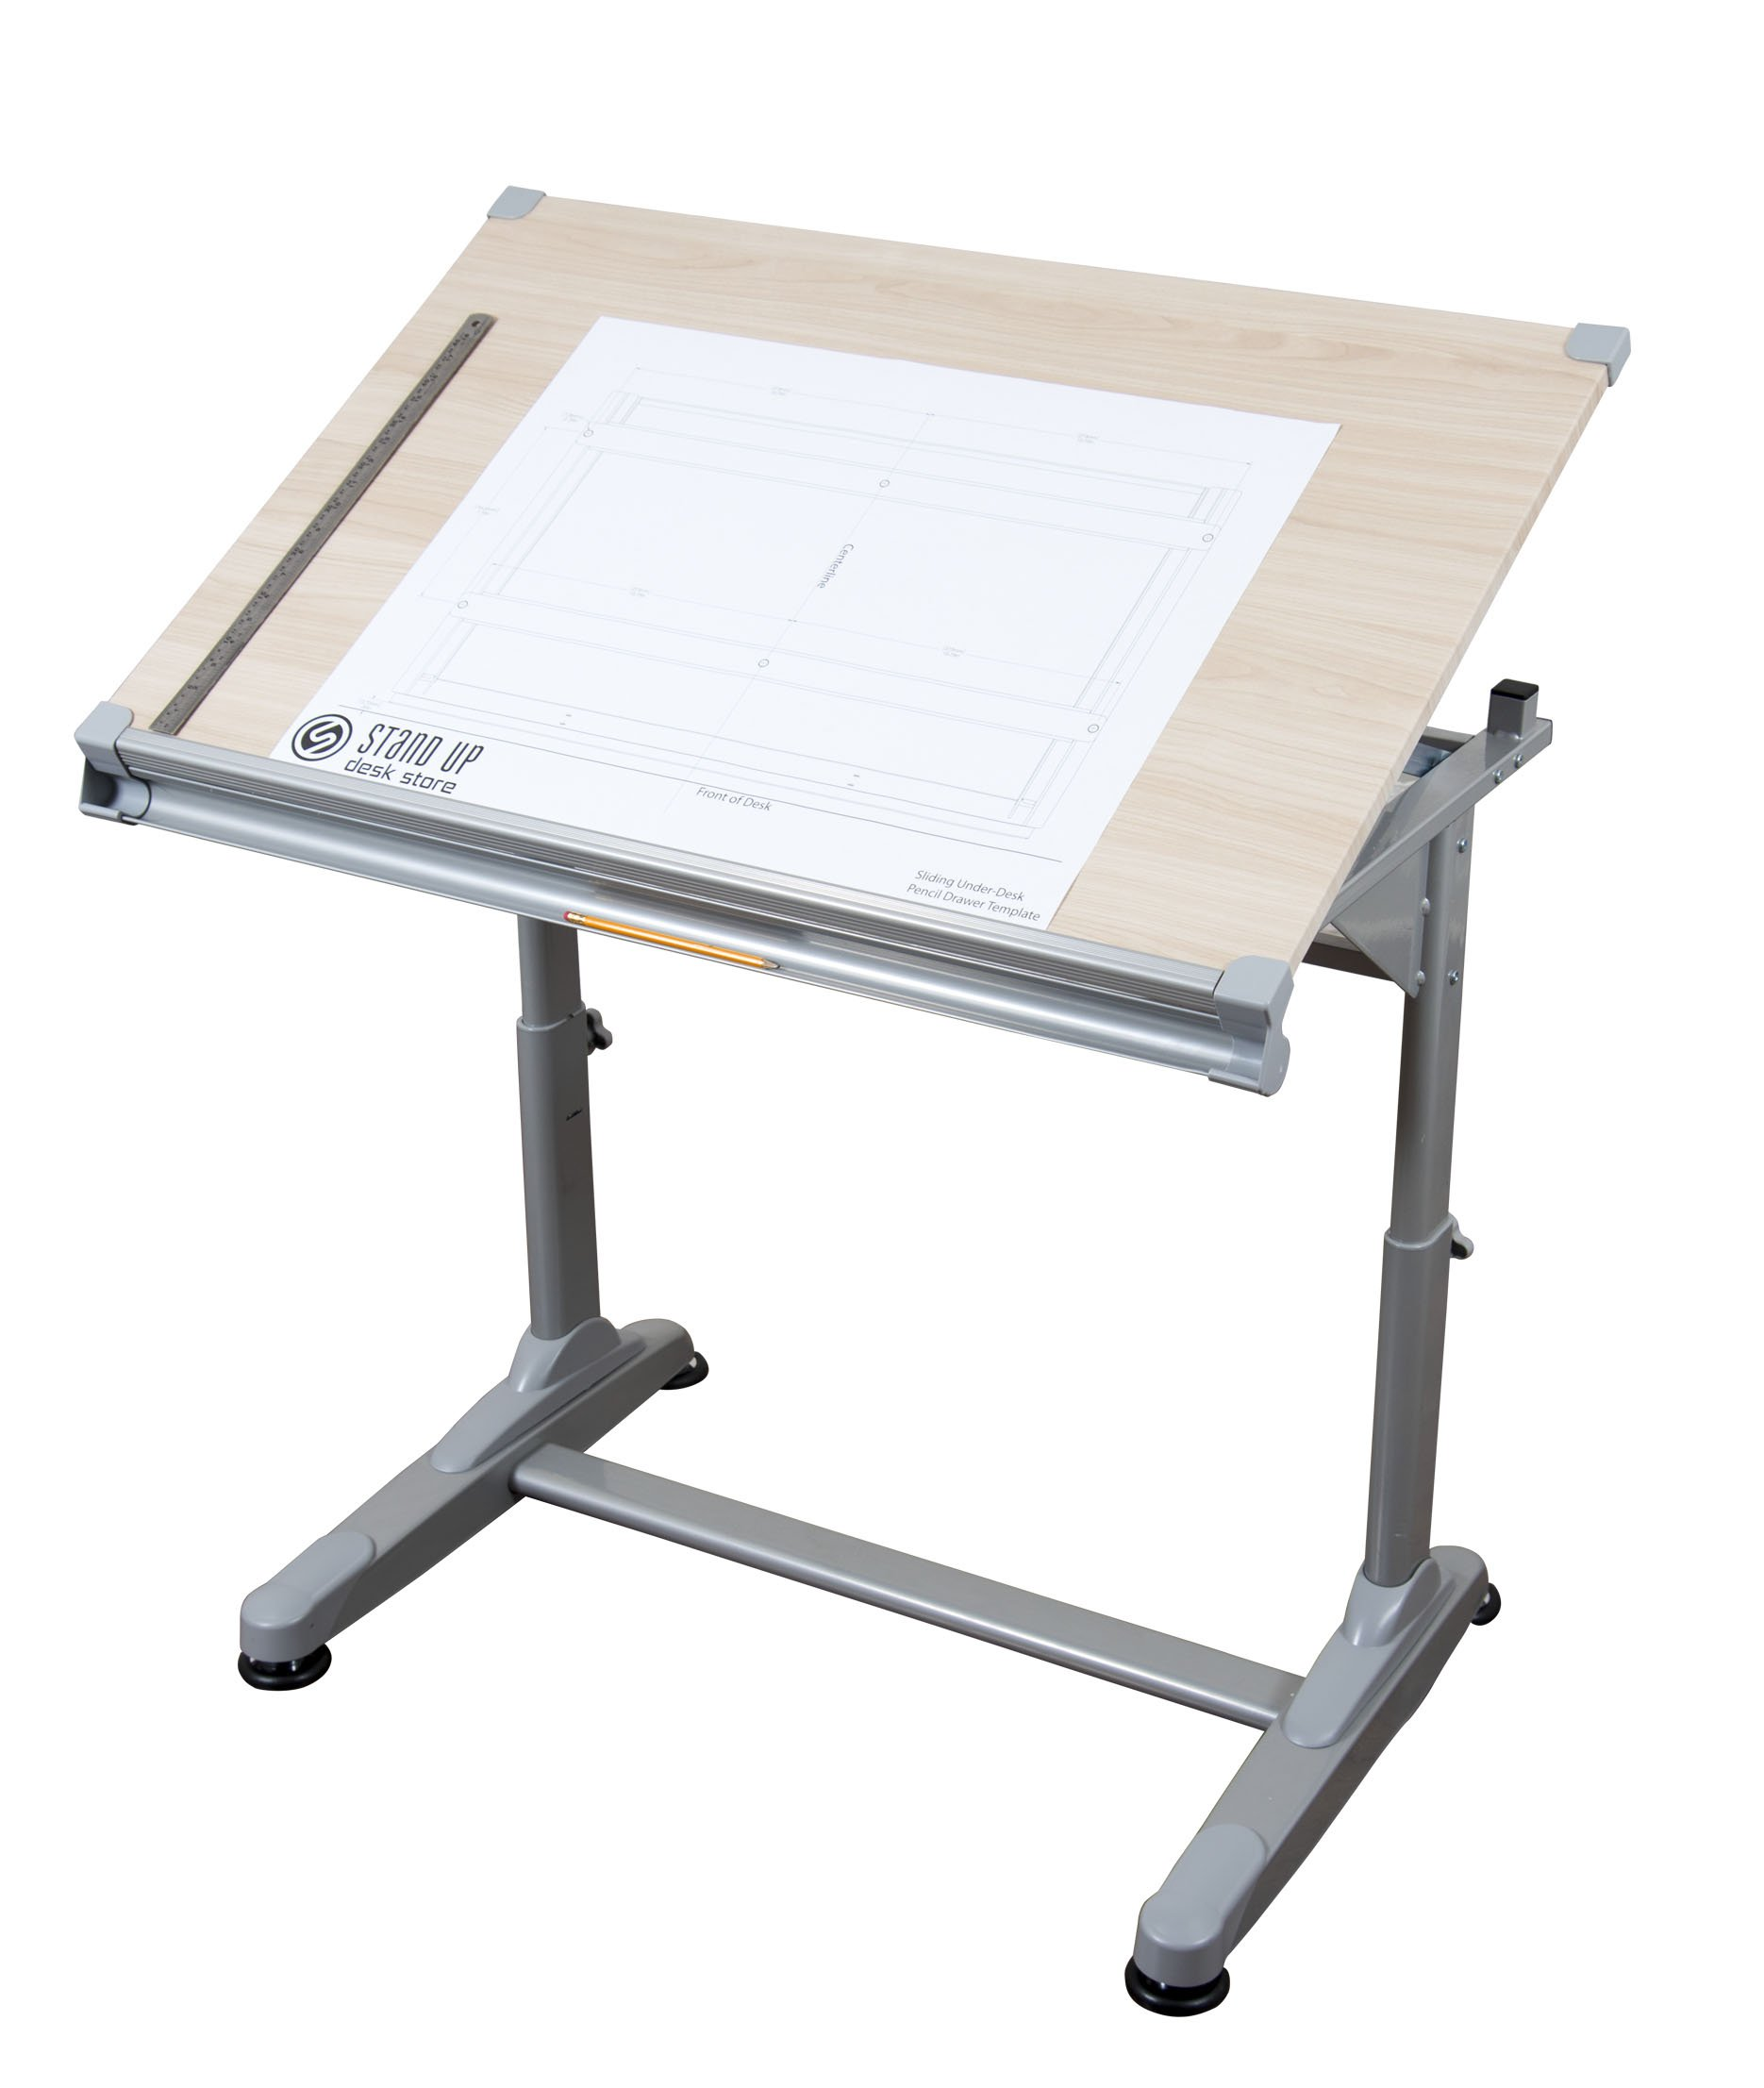 Stand Up Desk Store Height Adjustable Drawing and Drafting Table with 39.2''W x 27.5'' D Surface, Silver Frame with Birch Top